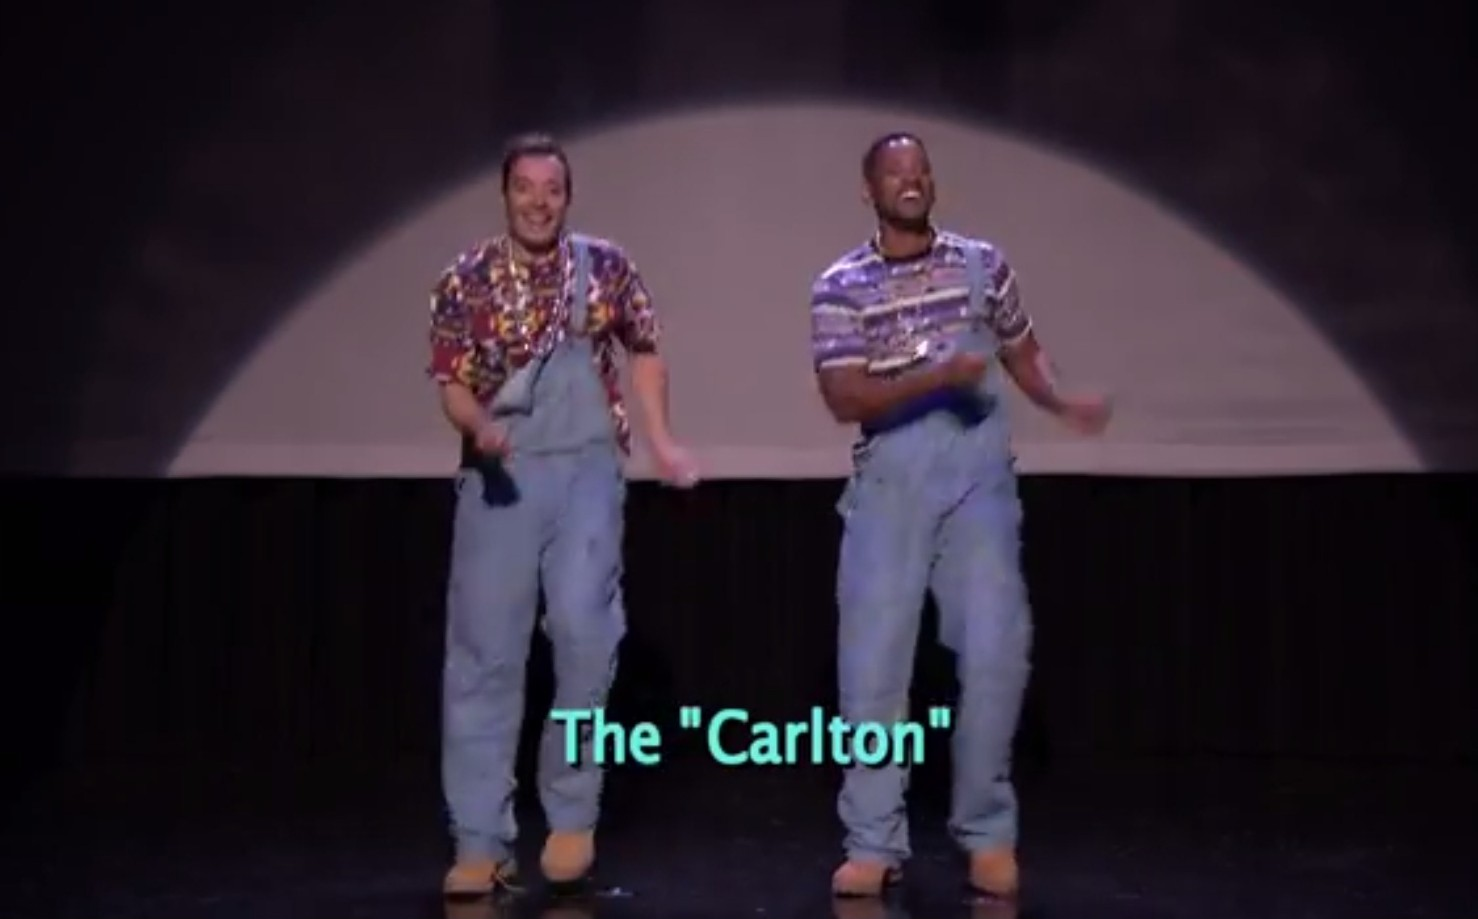 Will Smith does the 'Carlton' but gives up on twerking in hip hop dance video